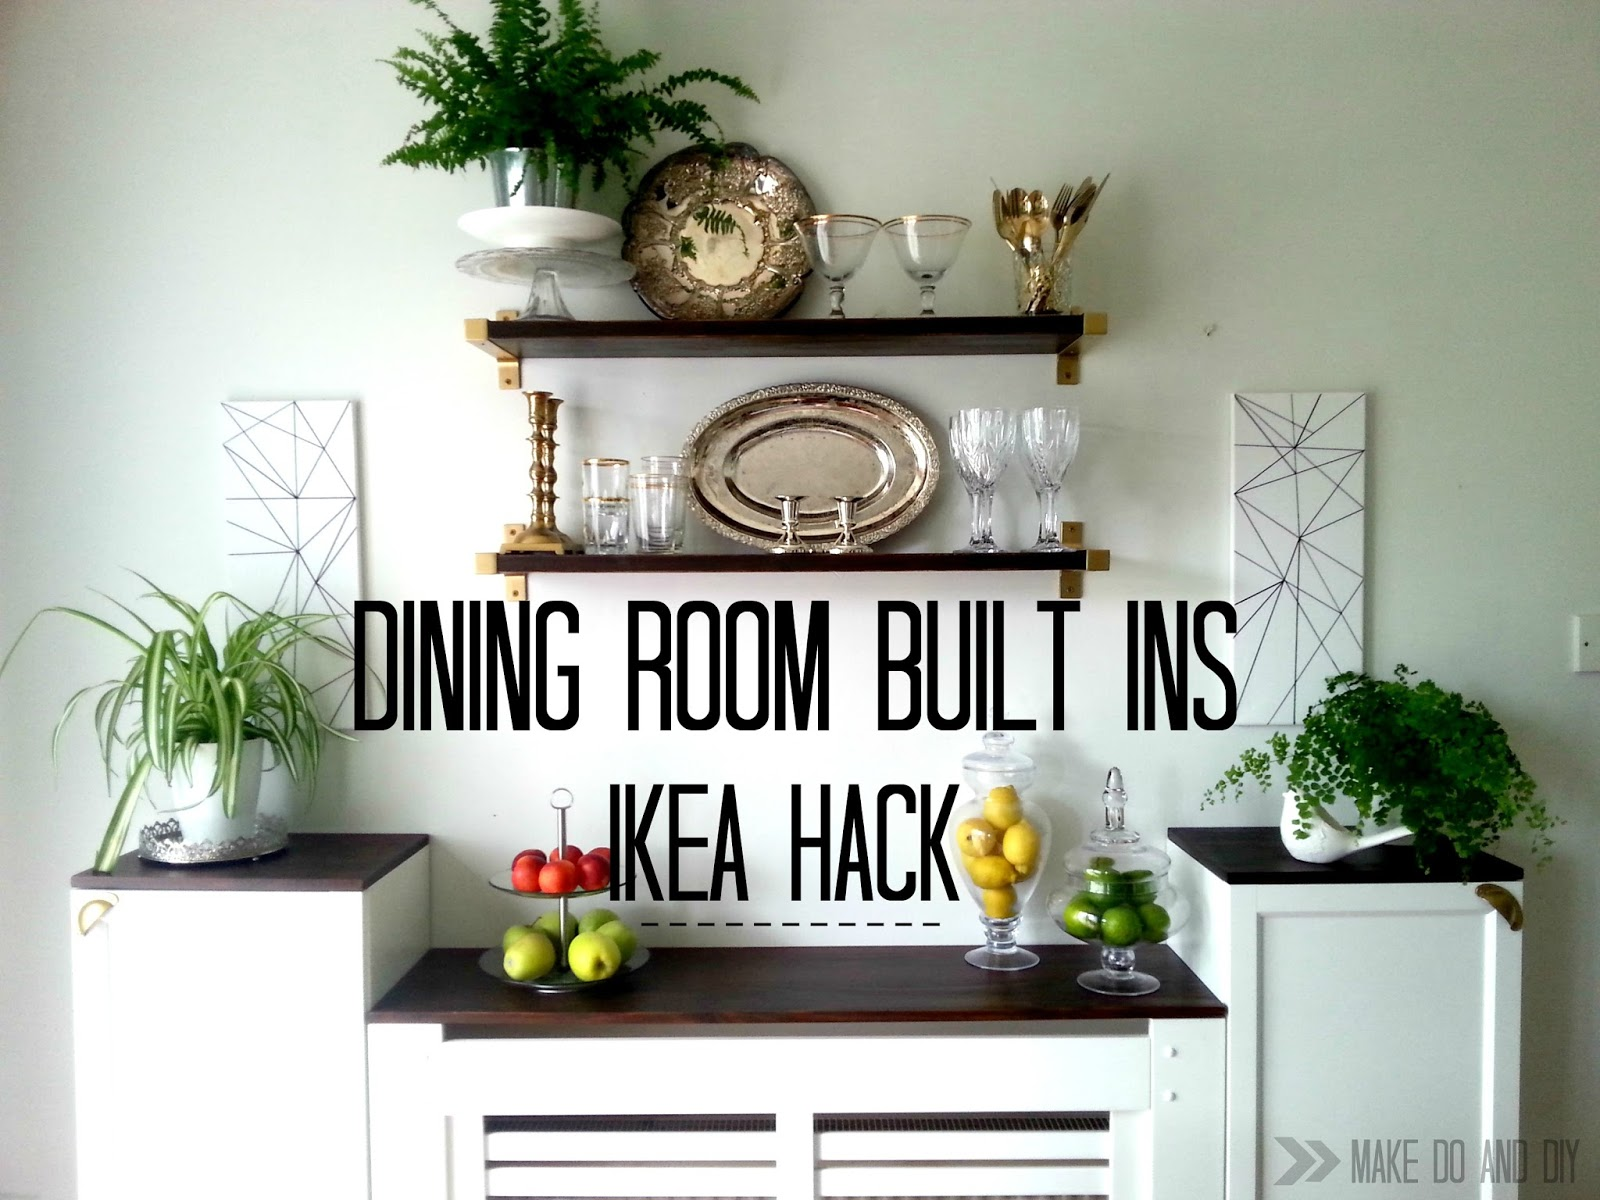 Ikea Hack Billy ikea hack for built in dining room storage when you to work